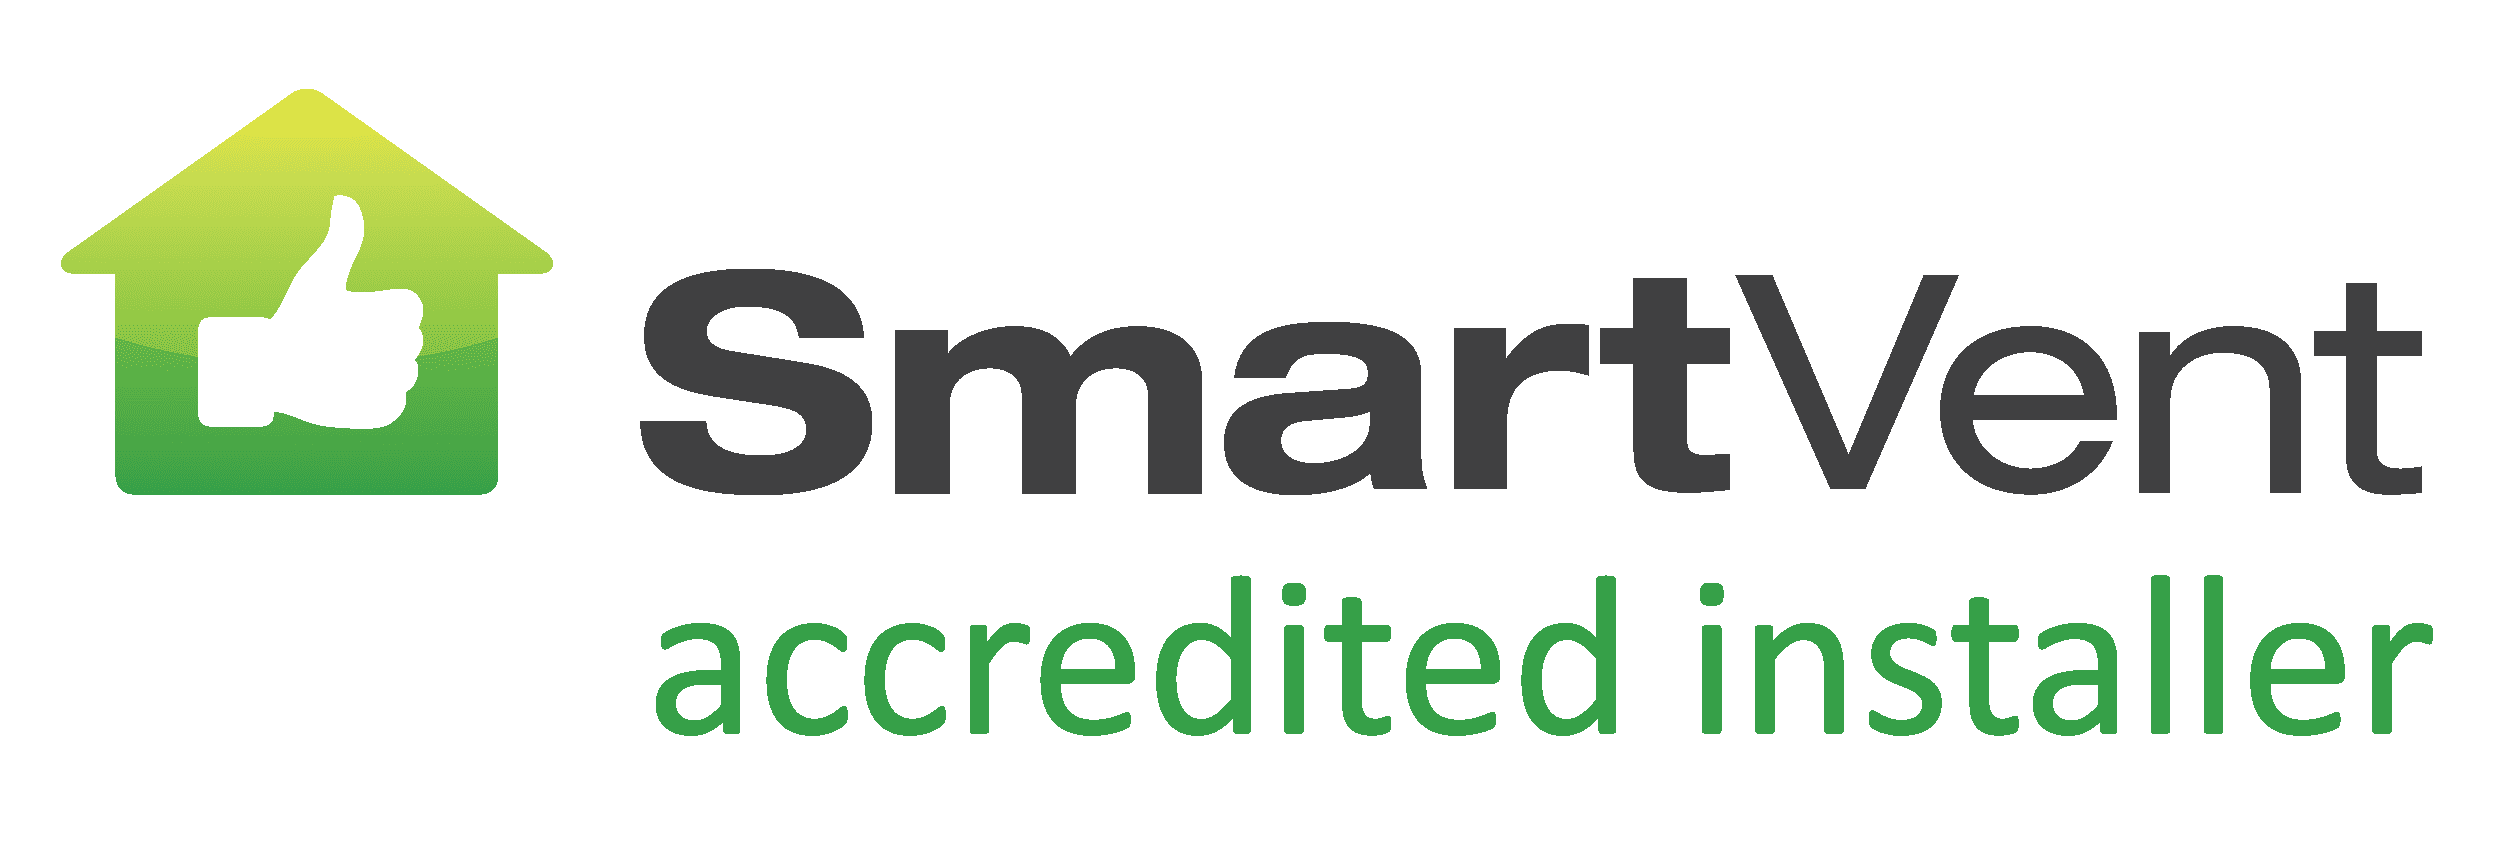 SmartVent Accredited Installer wellington electricians - SmartVent Accredied Installer Car Decal 1902 - About MC Electrical